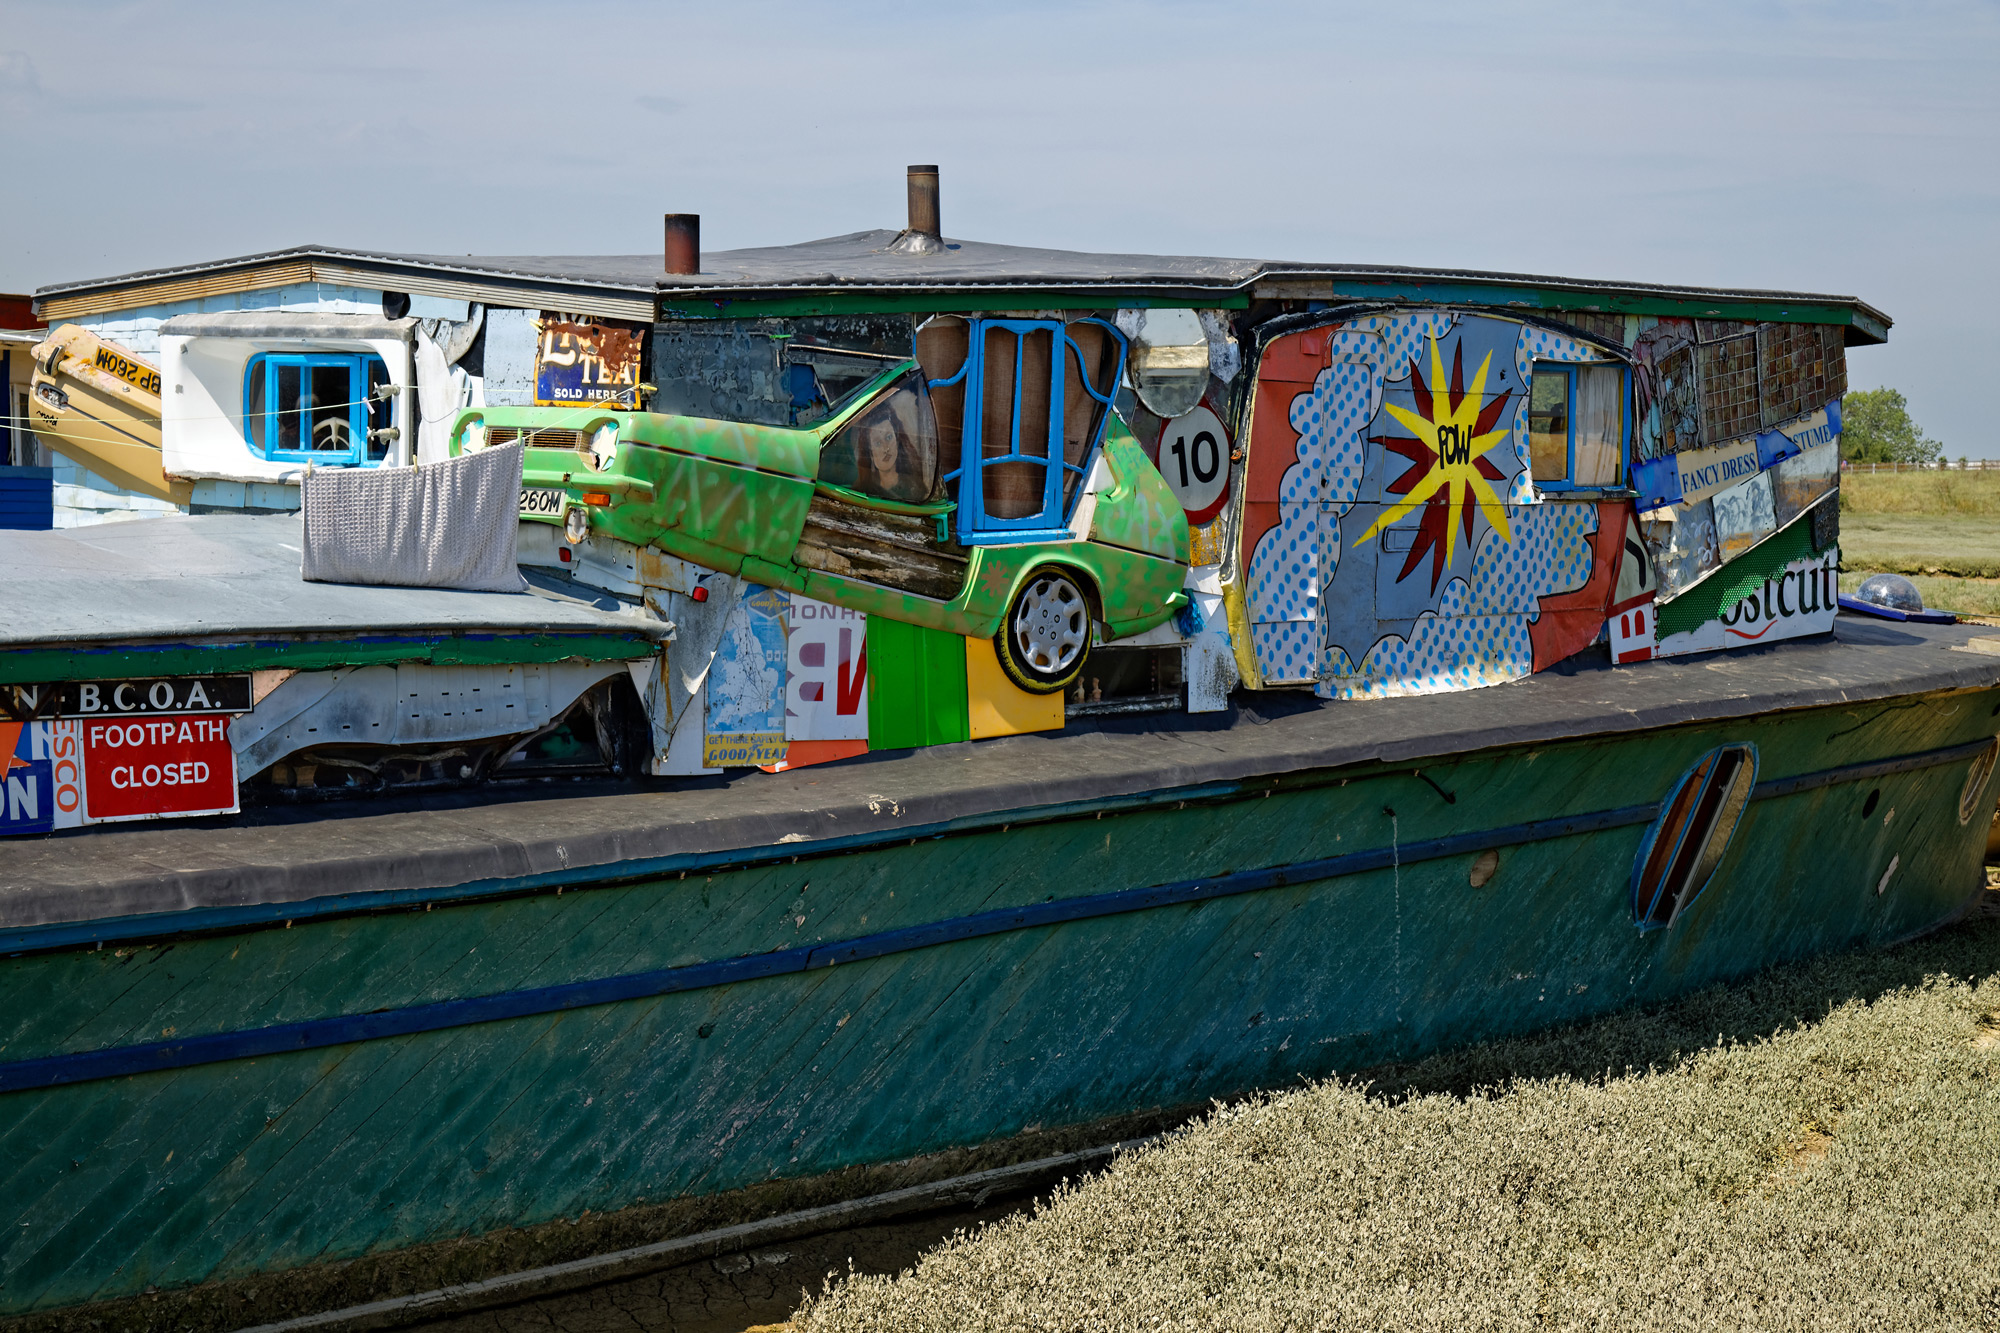 Arte Digital World Panjim Goa Eccentric British Houseboats Built From Decommissioned Ambulances